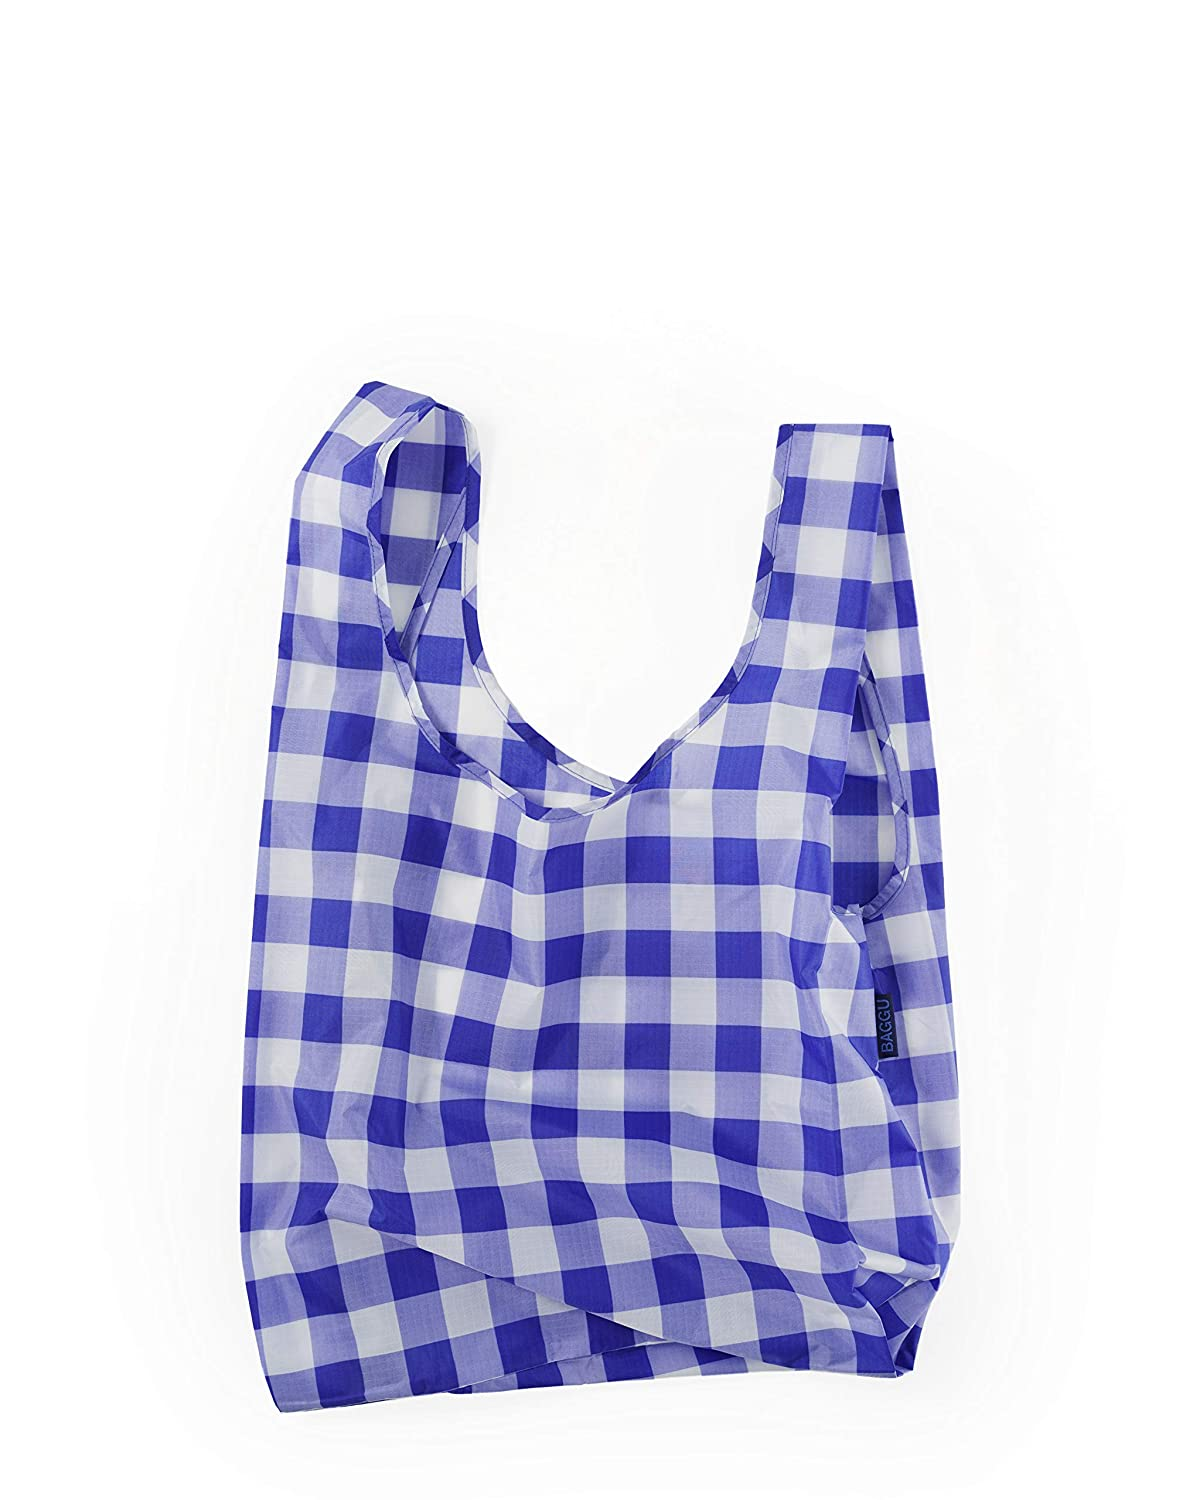 BAGGU Standard Reusable Shopping Bag, Ripstop Nylon Grocery Tote or Lunch Bag, Big Check Blue